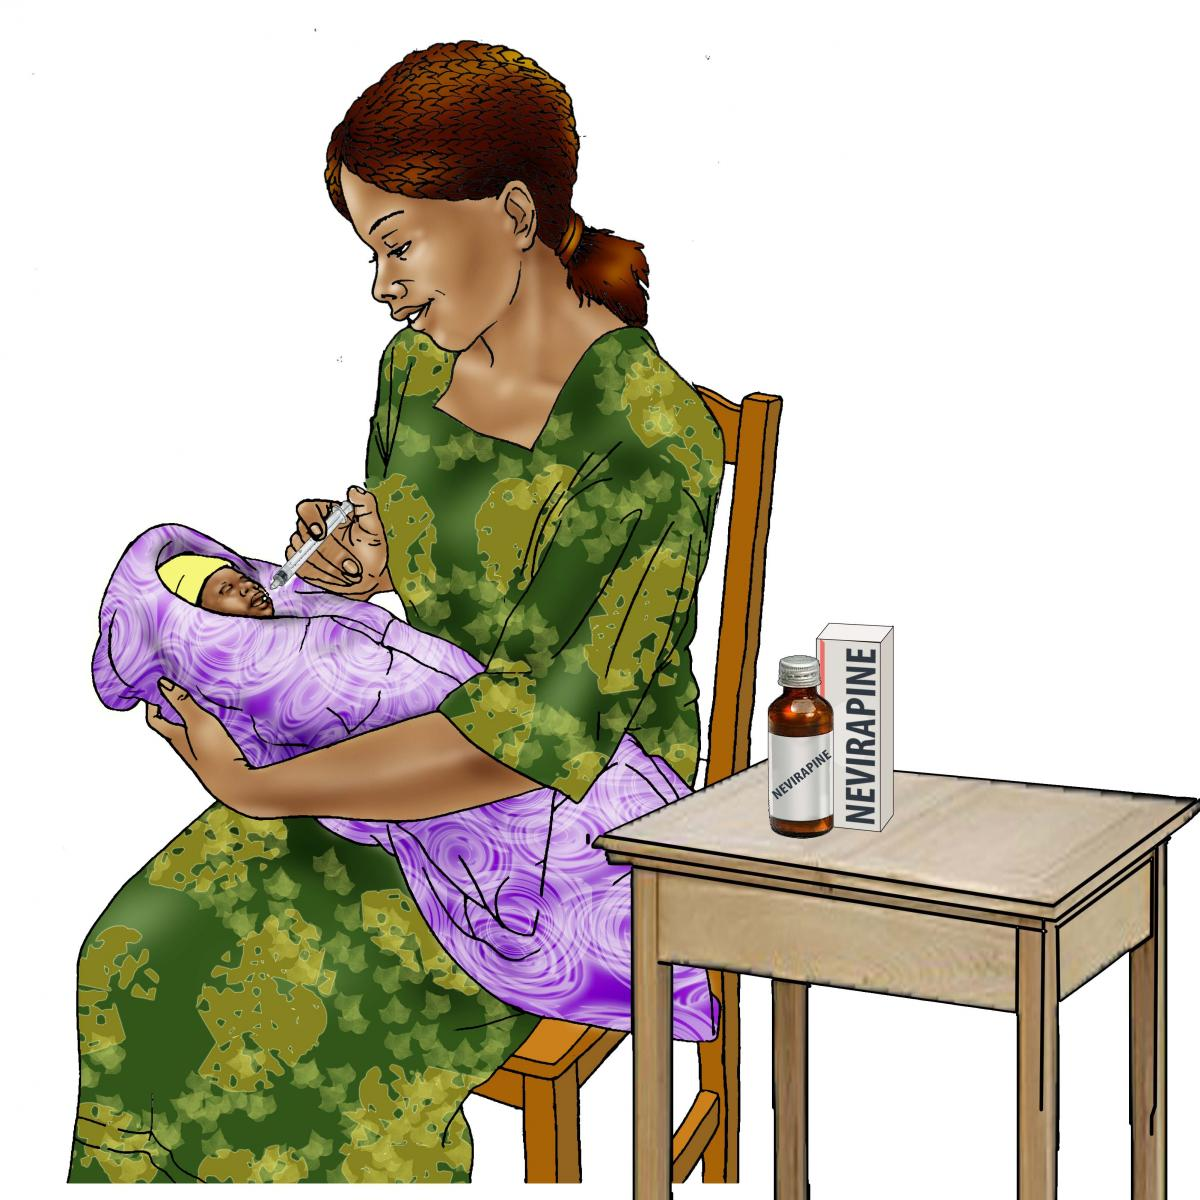 Sick Baby Health Care - Giving medicine to baby 0-24 mo - 03B - Non-country specific